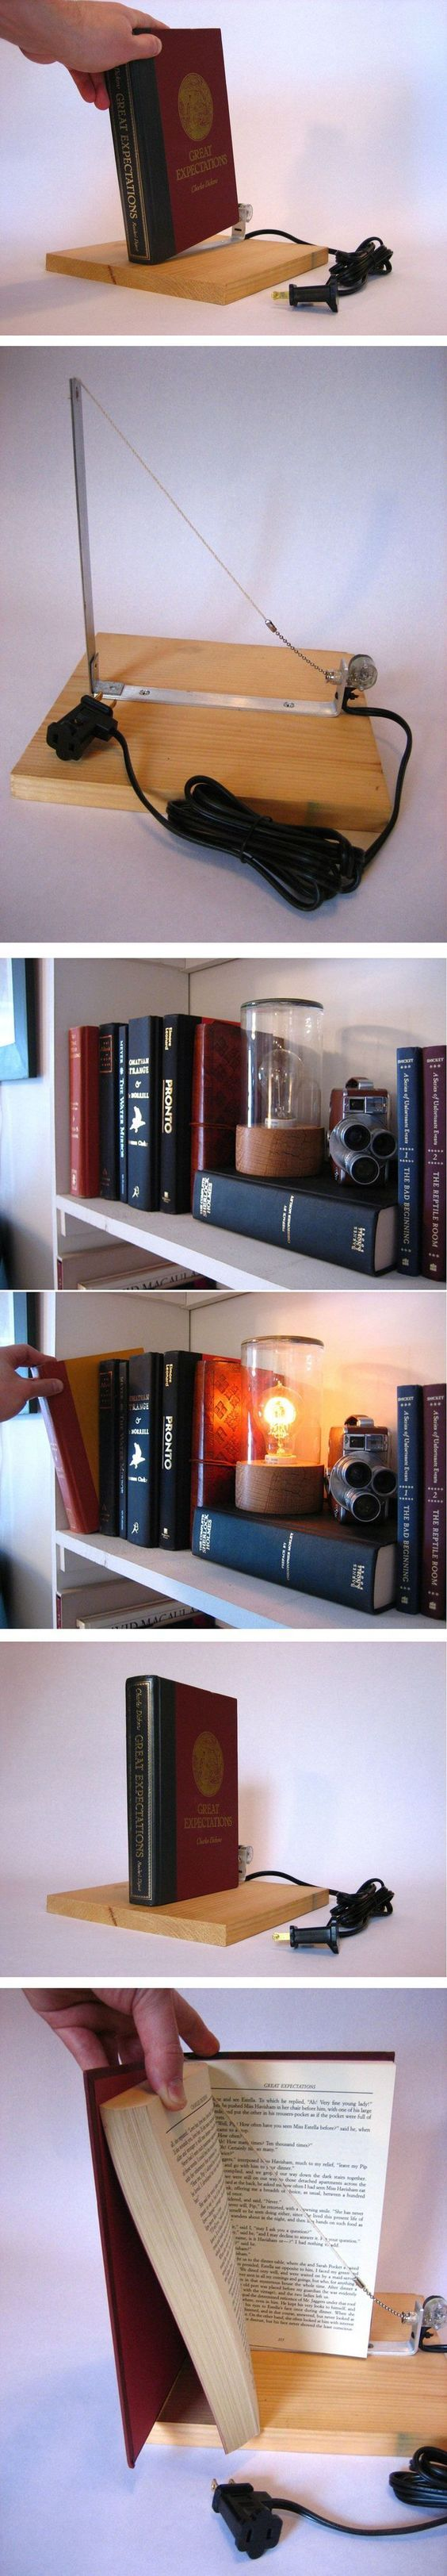 Secret Bookshelf Light Switch, I linked the Instructables web site with the step by step.